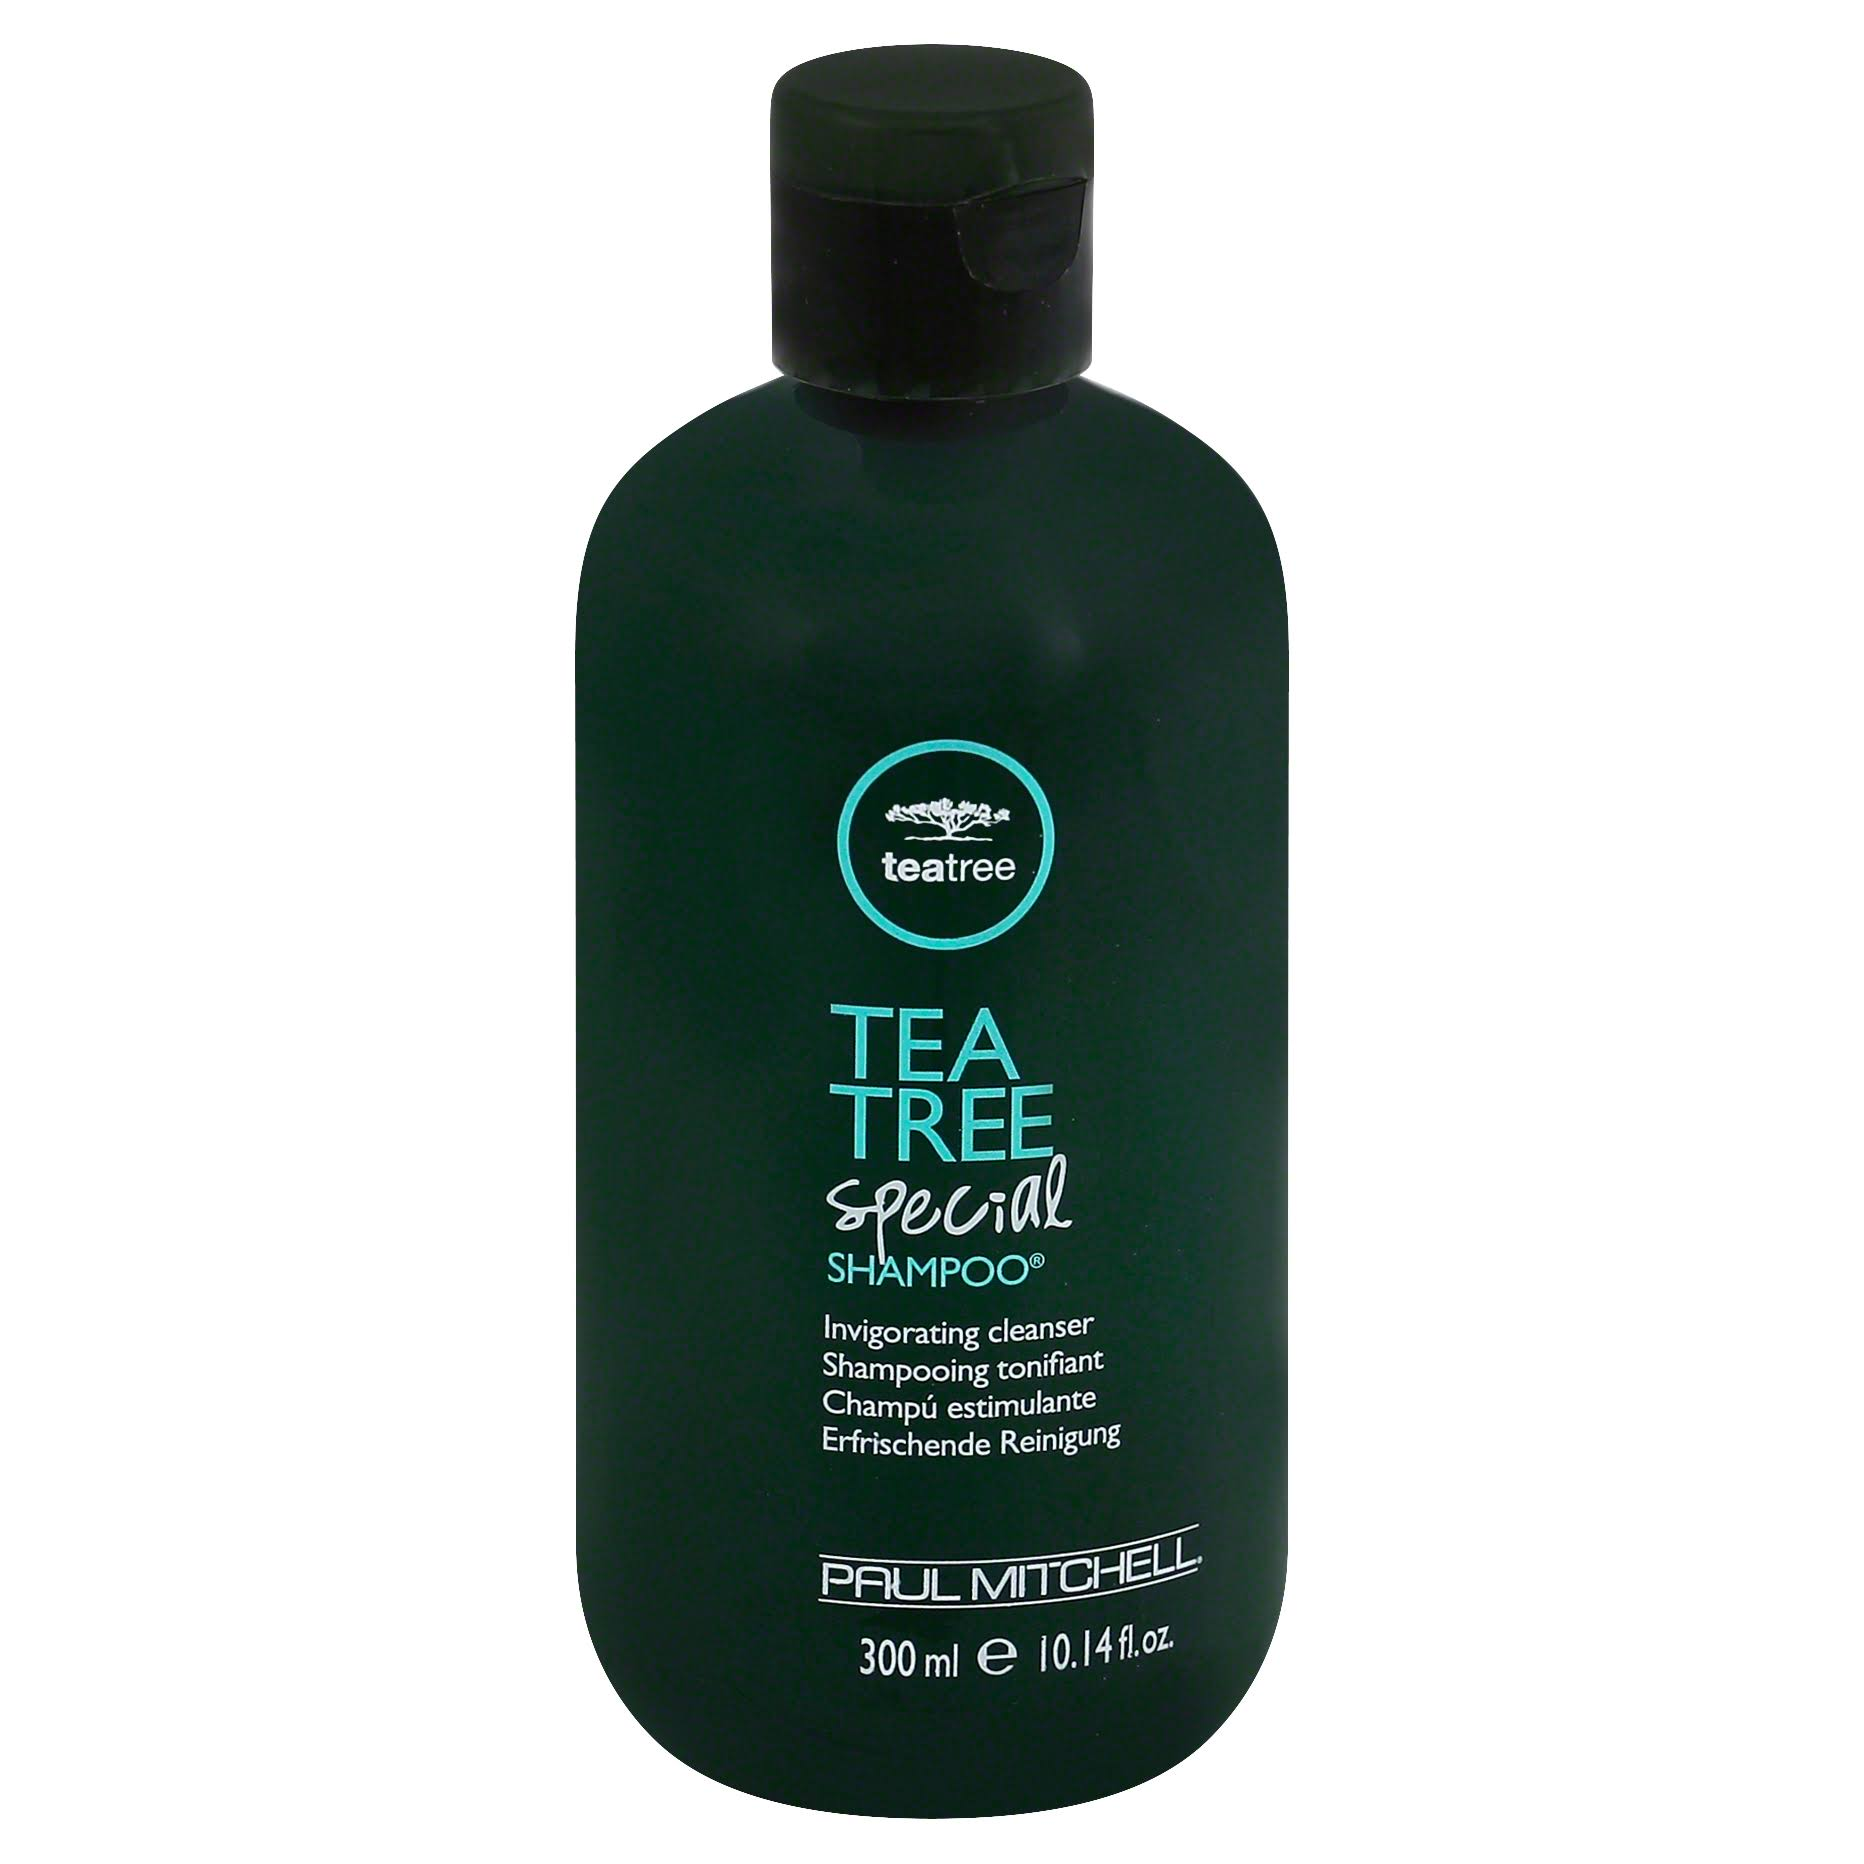 Paul Mitchell Special Shampoo - 300ml, Tea Tree